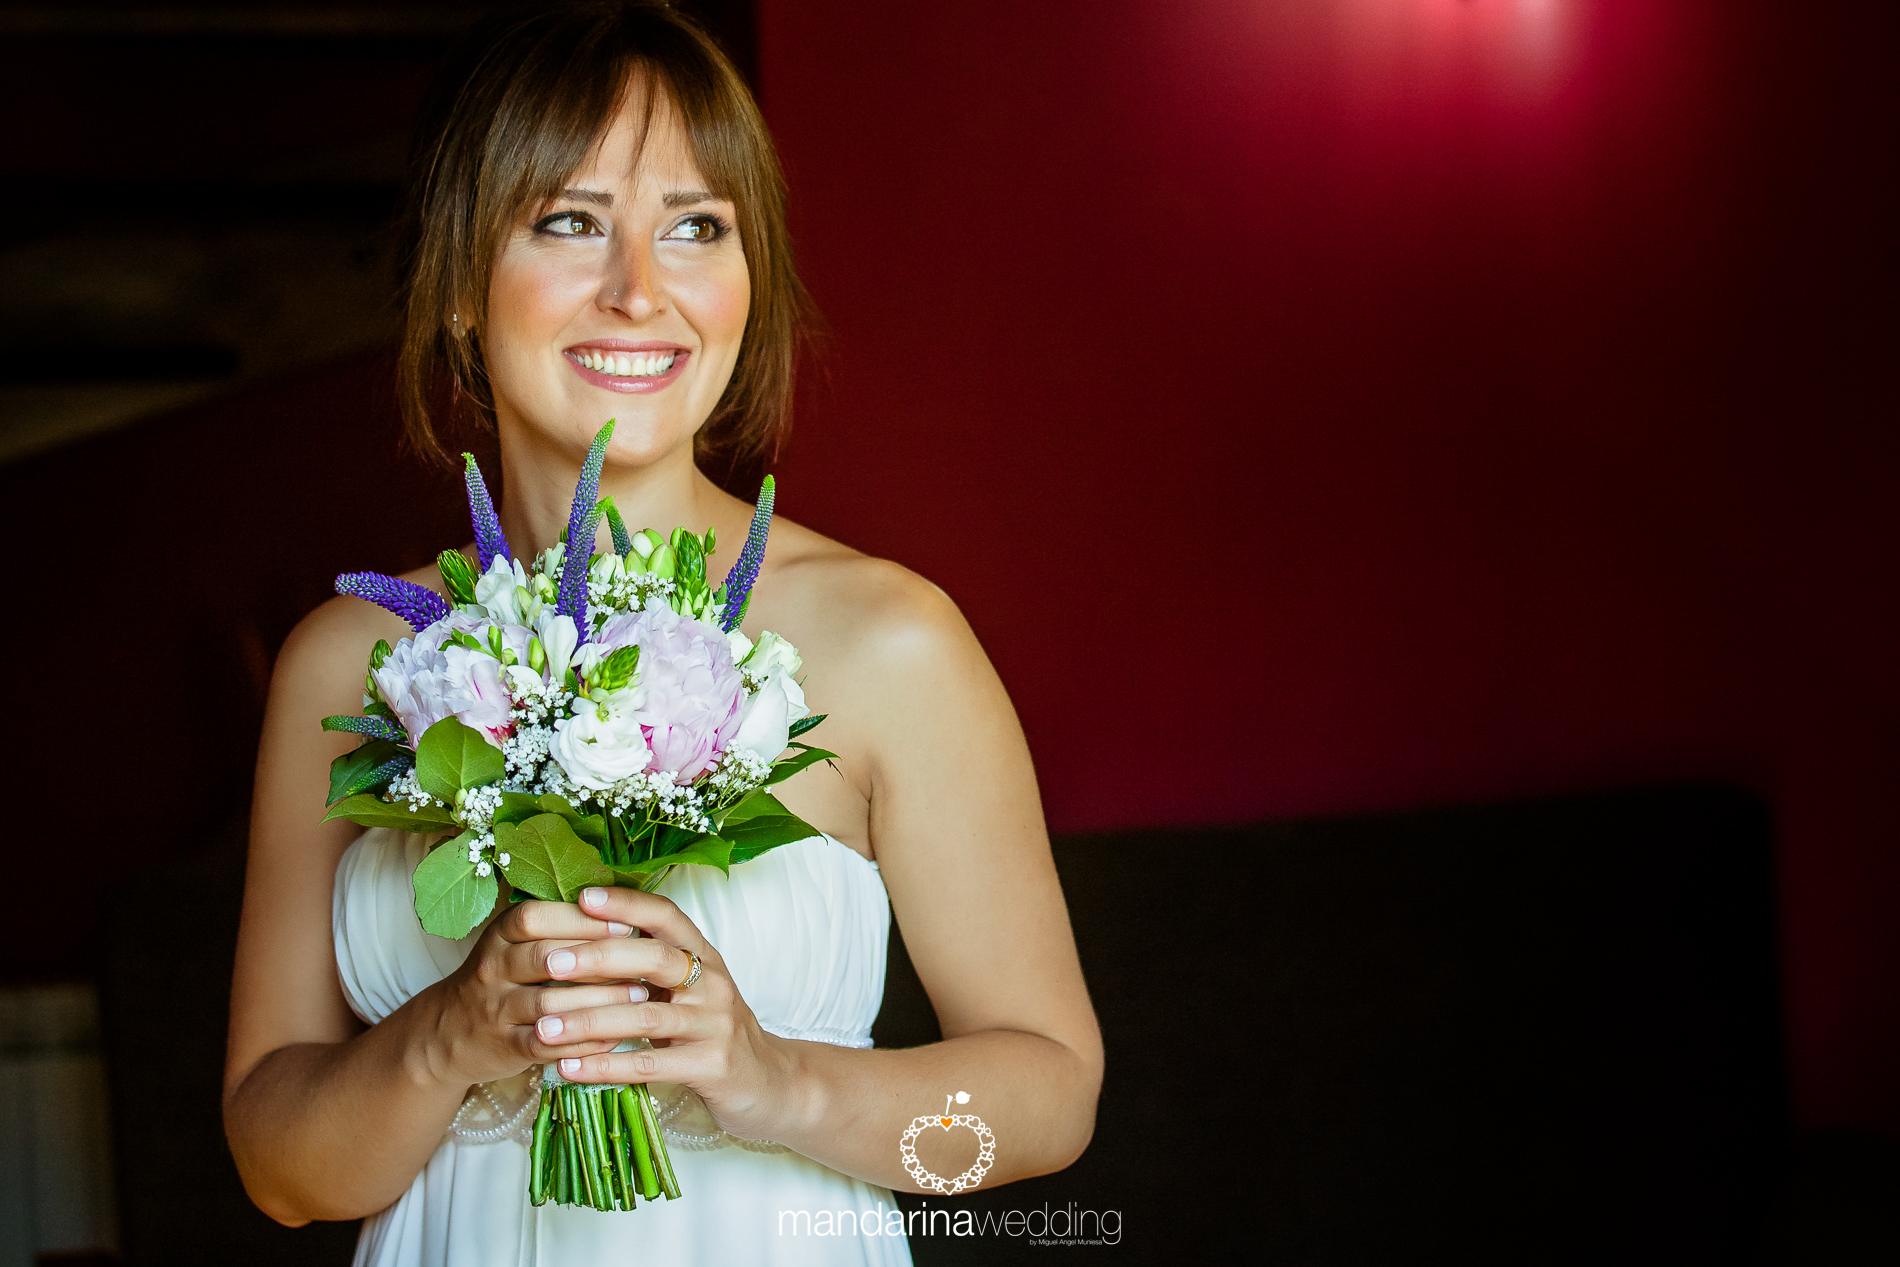 mandarina wedding_14